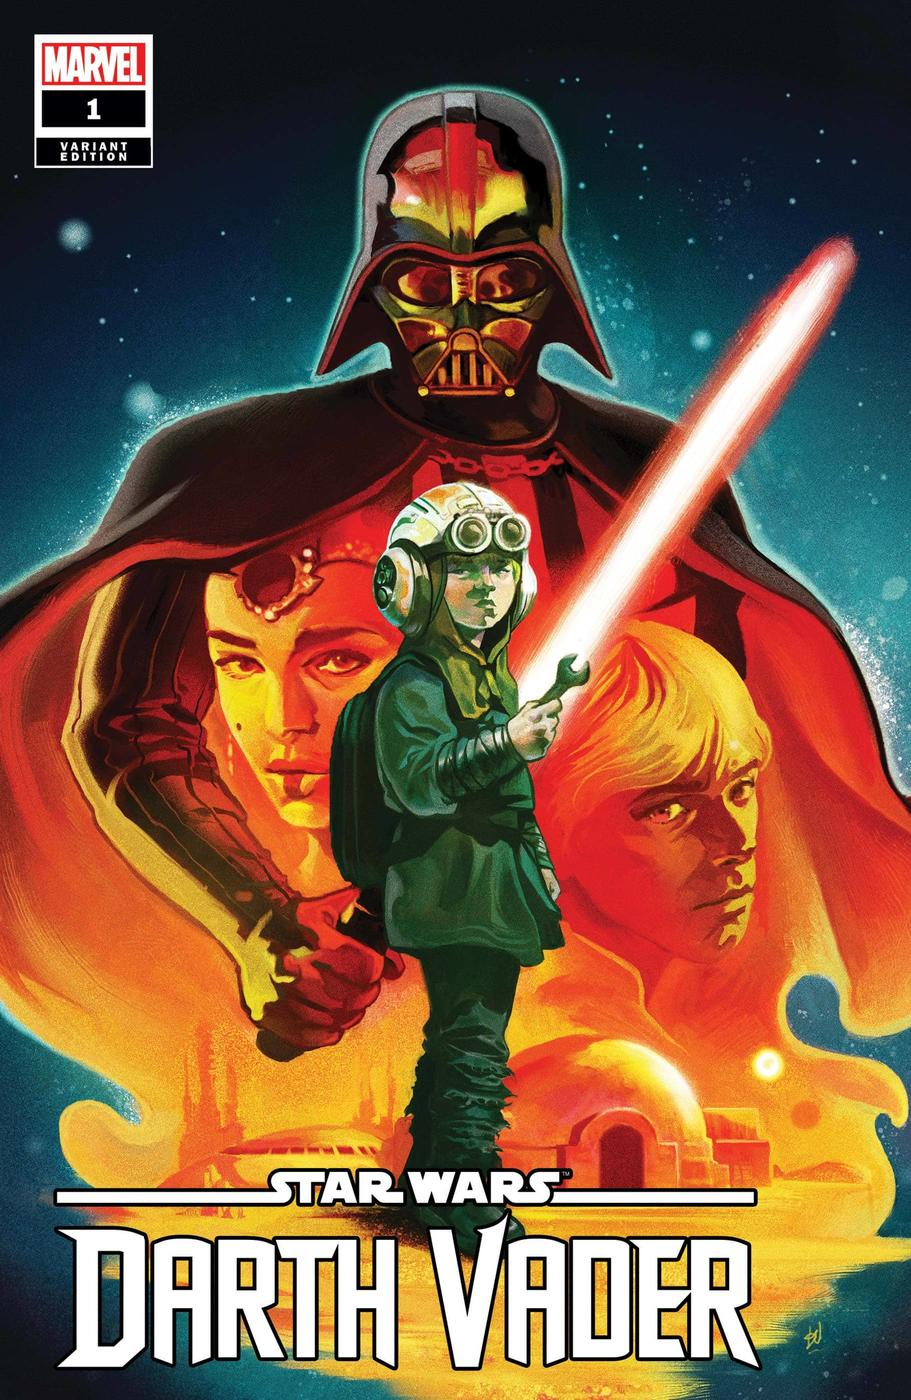 STAR WARS: DARTH VADER #1 variant cover by Mike Del Mundo